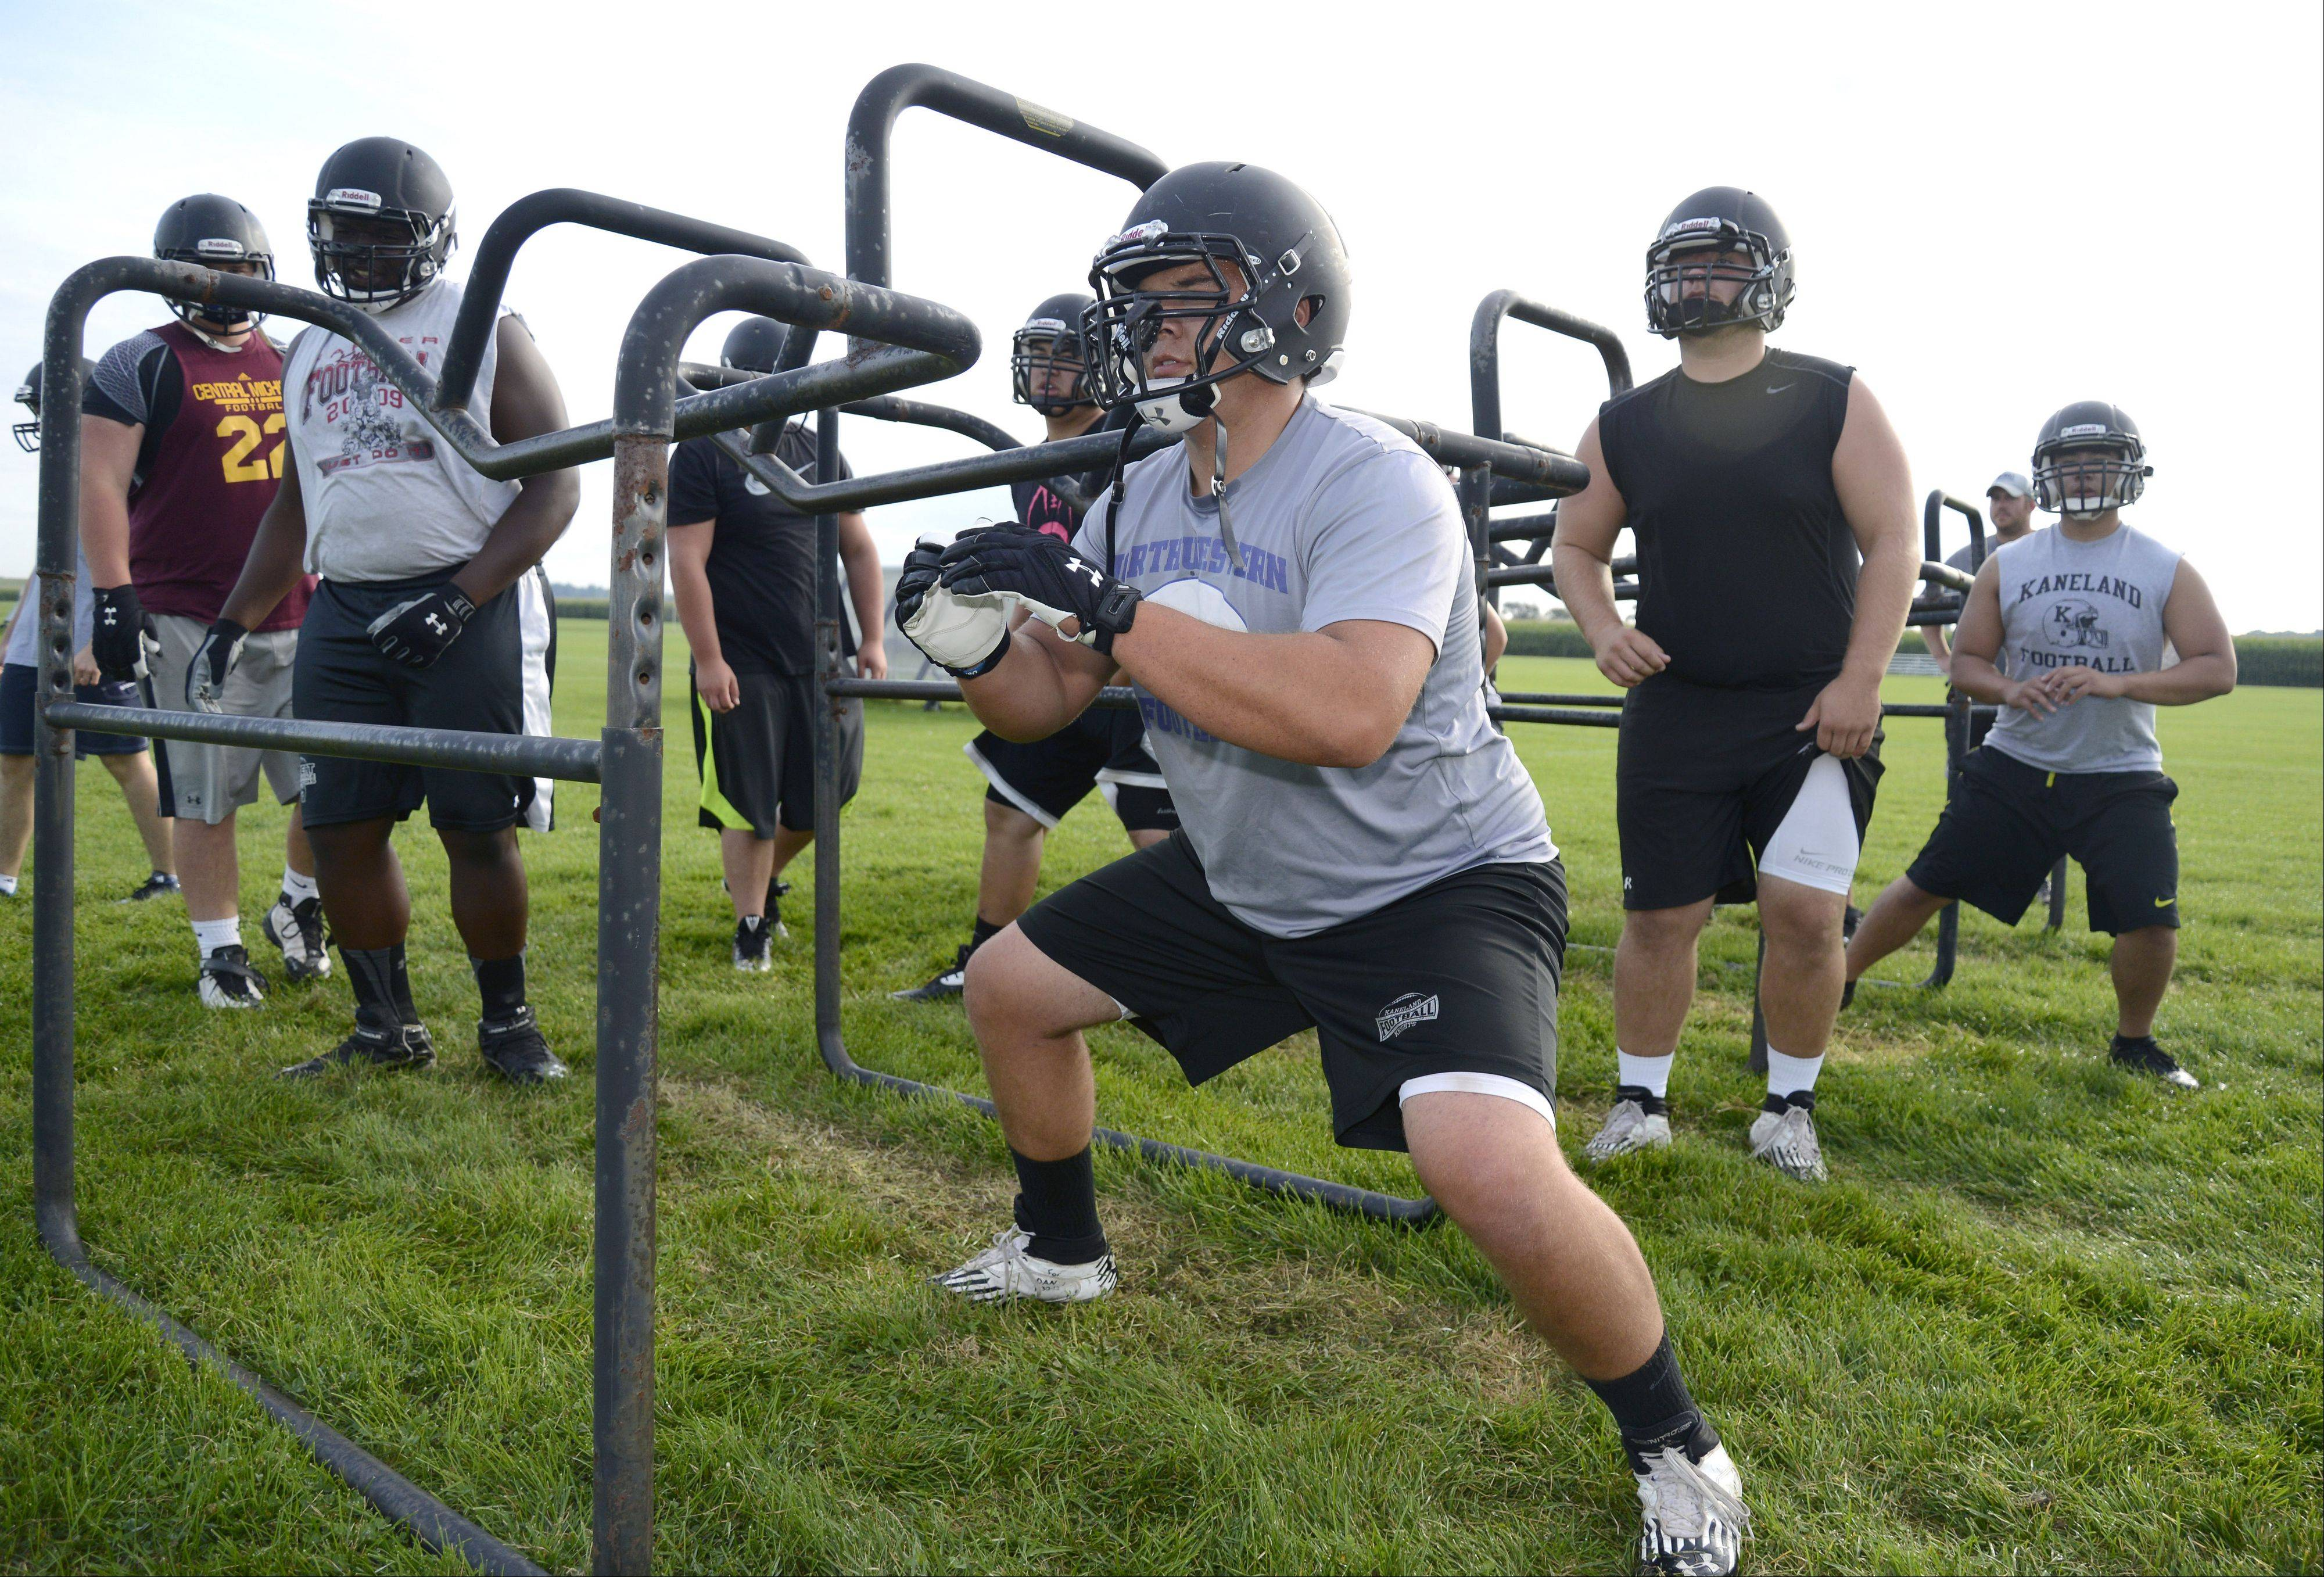 Laura Stoecker/lstoecker@dailyherald.com Senior Shane Jorgensen during drills at Kaneland High School's varsity football practice on Thursday, August 15.